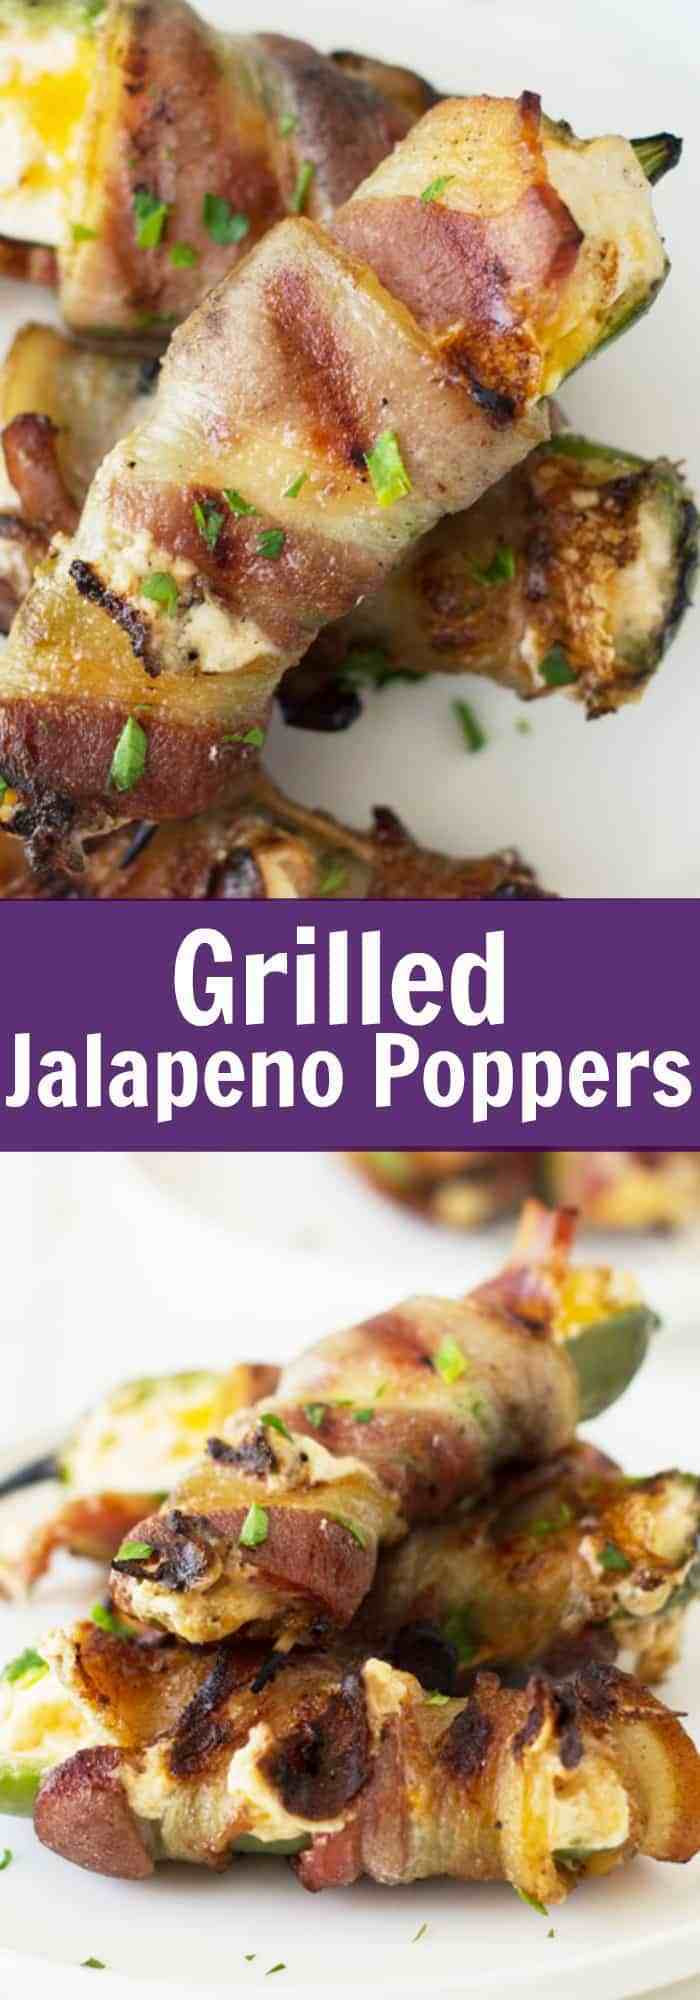 Jalapeno Poppers Grilled  Grilled Jalapeno Poppers Countryside Cravings